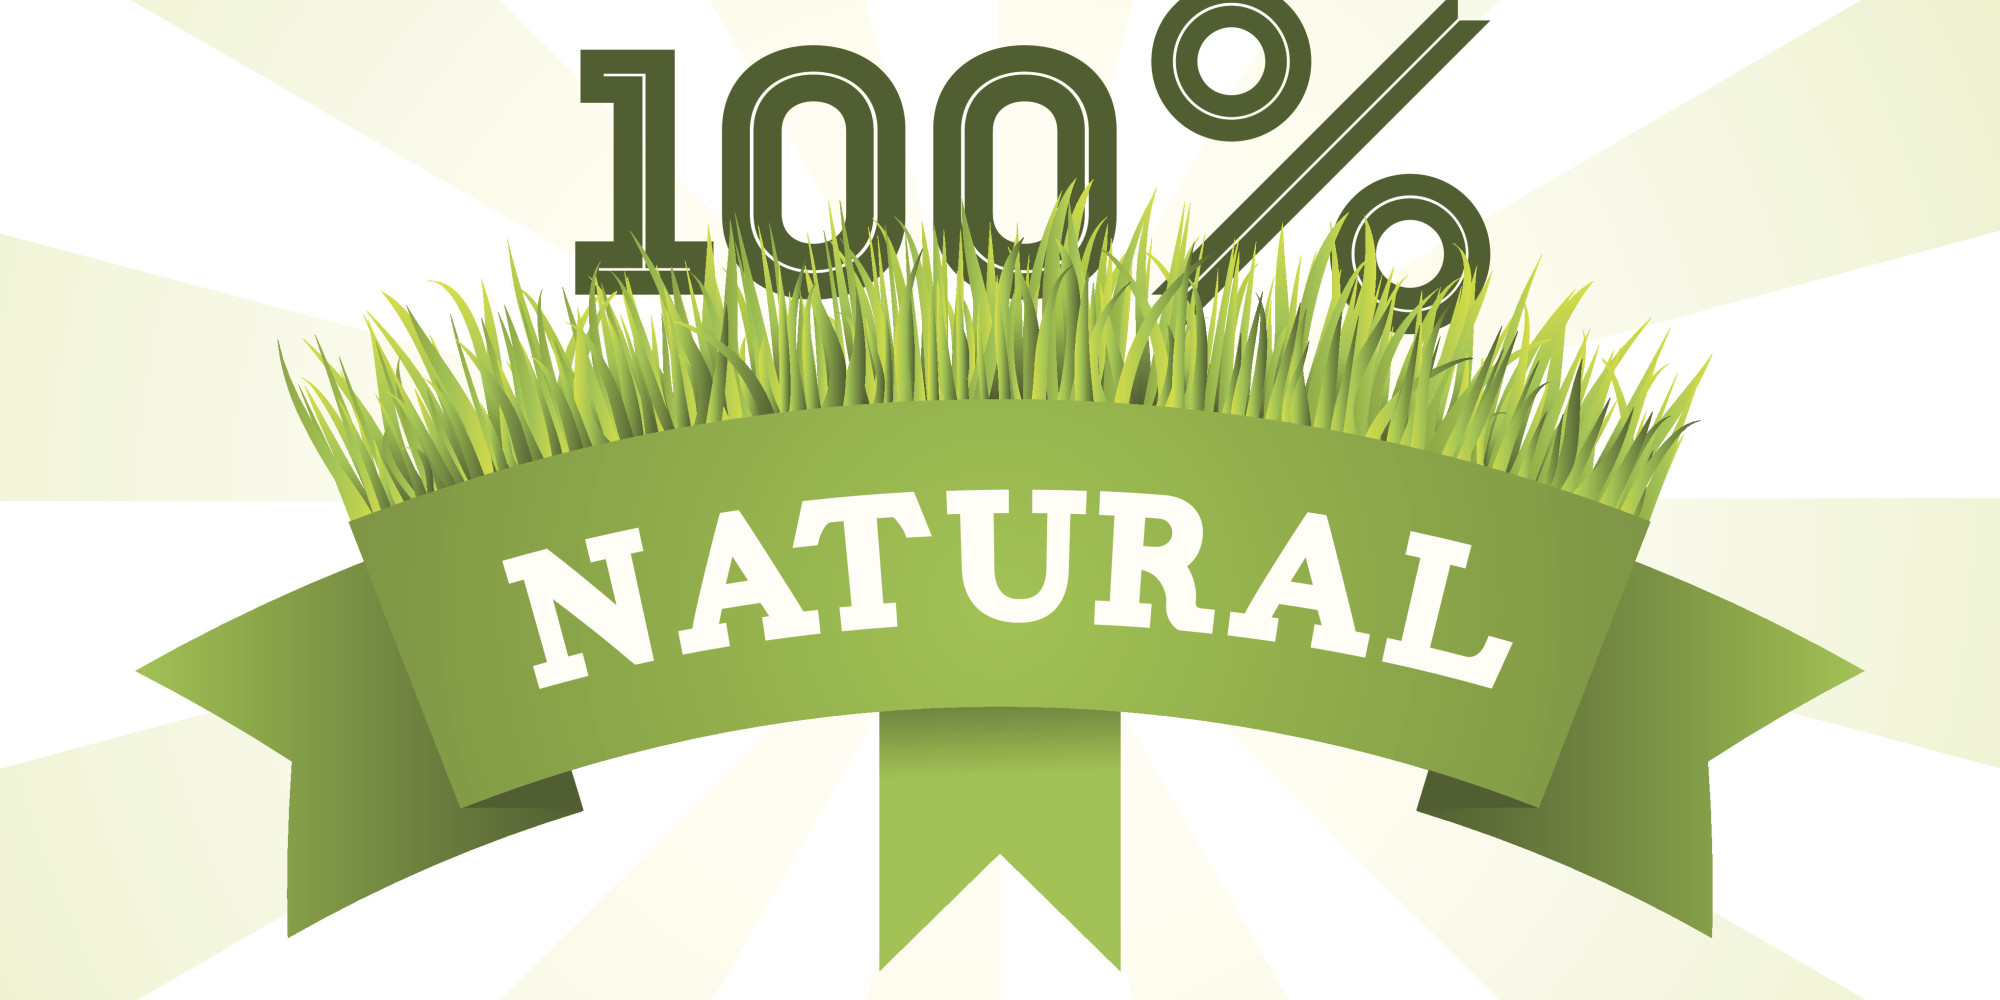 Natural Food Products Definition